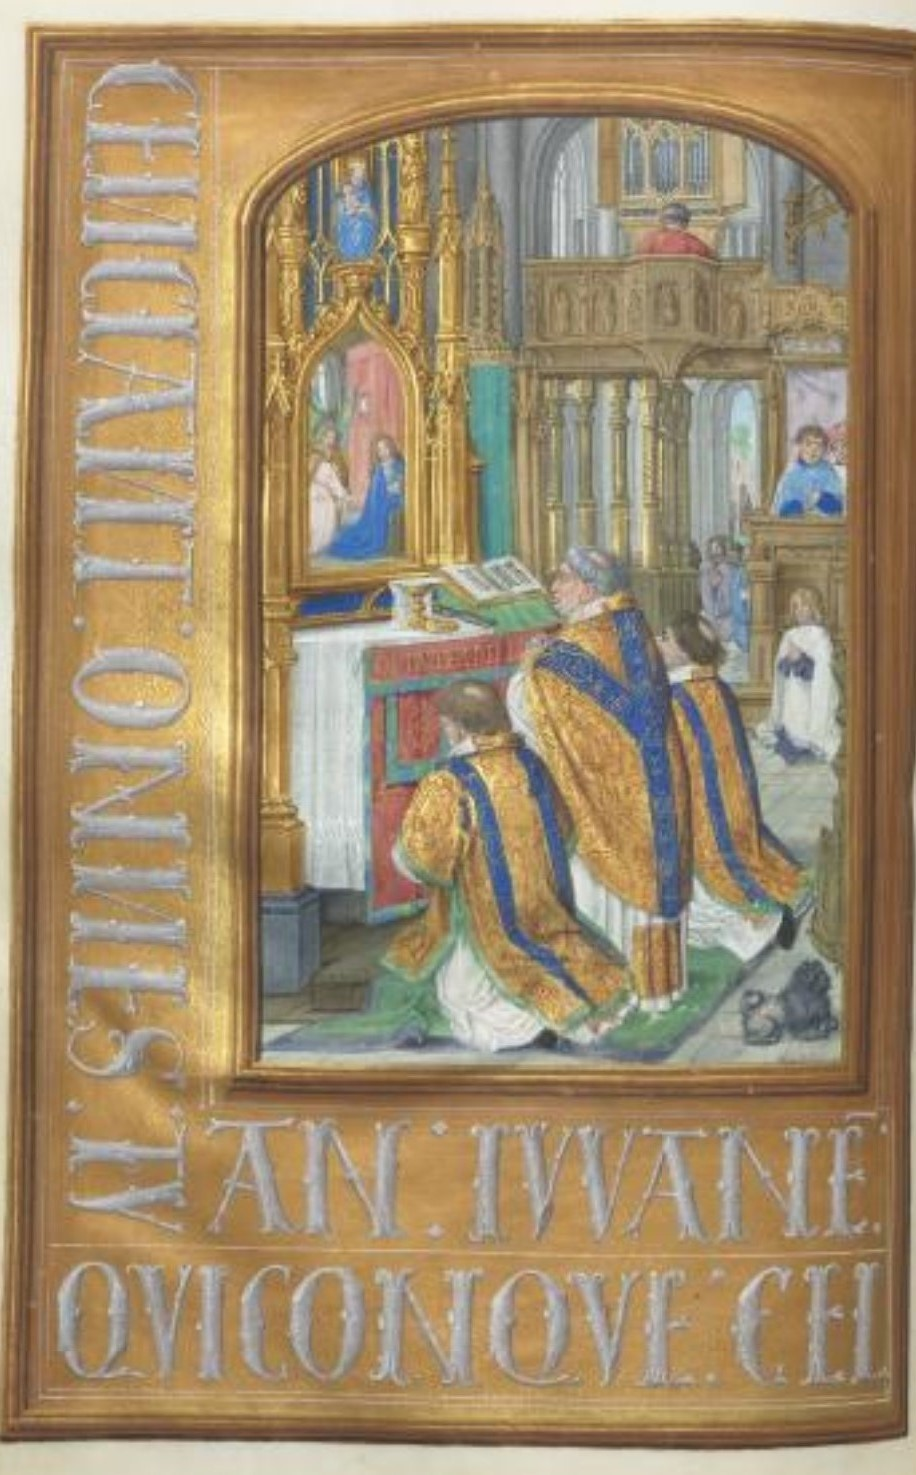 1500 ca Master of the First Prayerbook of MaximillianHours of Queen Isabella the Catholic, Cleveland Museum of Arts, Fol. 87v, Celebration of the Mass